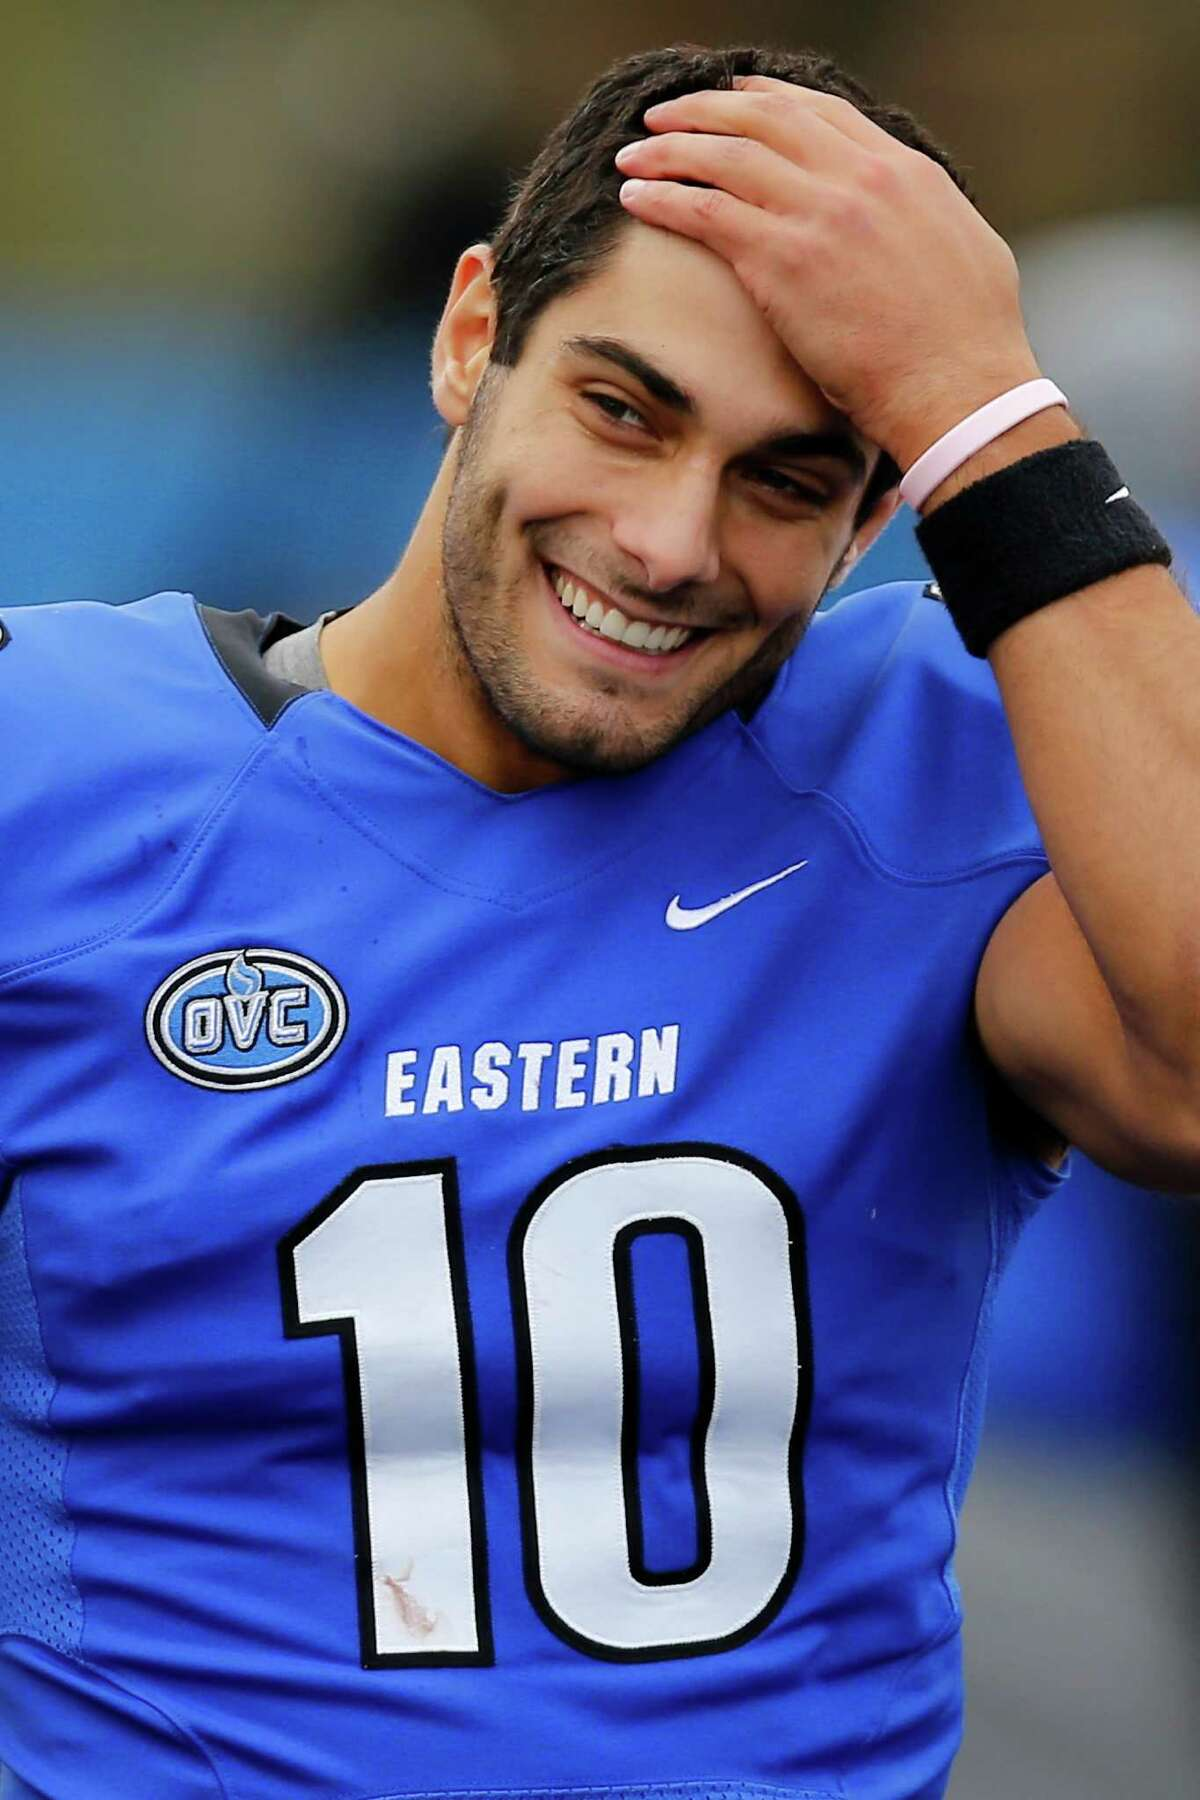 Where is he from? Jimmy G was born and raised in Arlington Heights, a suburb of Chicago. He went to the local high school and attended Eastern Illinois University, where he played quarterback and shattered former Dallas Cowboy star Tony Romo's touchdown record at the school. Fittingly for a quarterback, he majored in management.